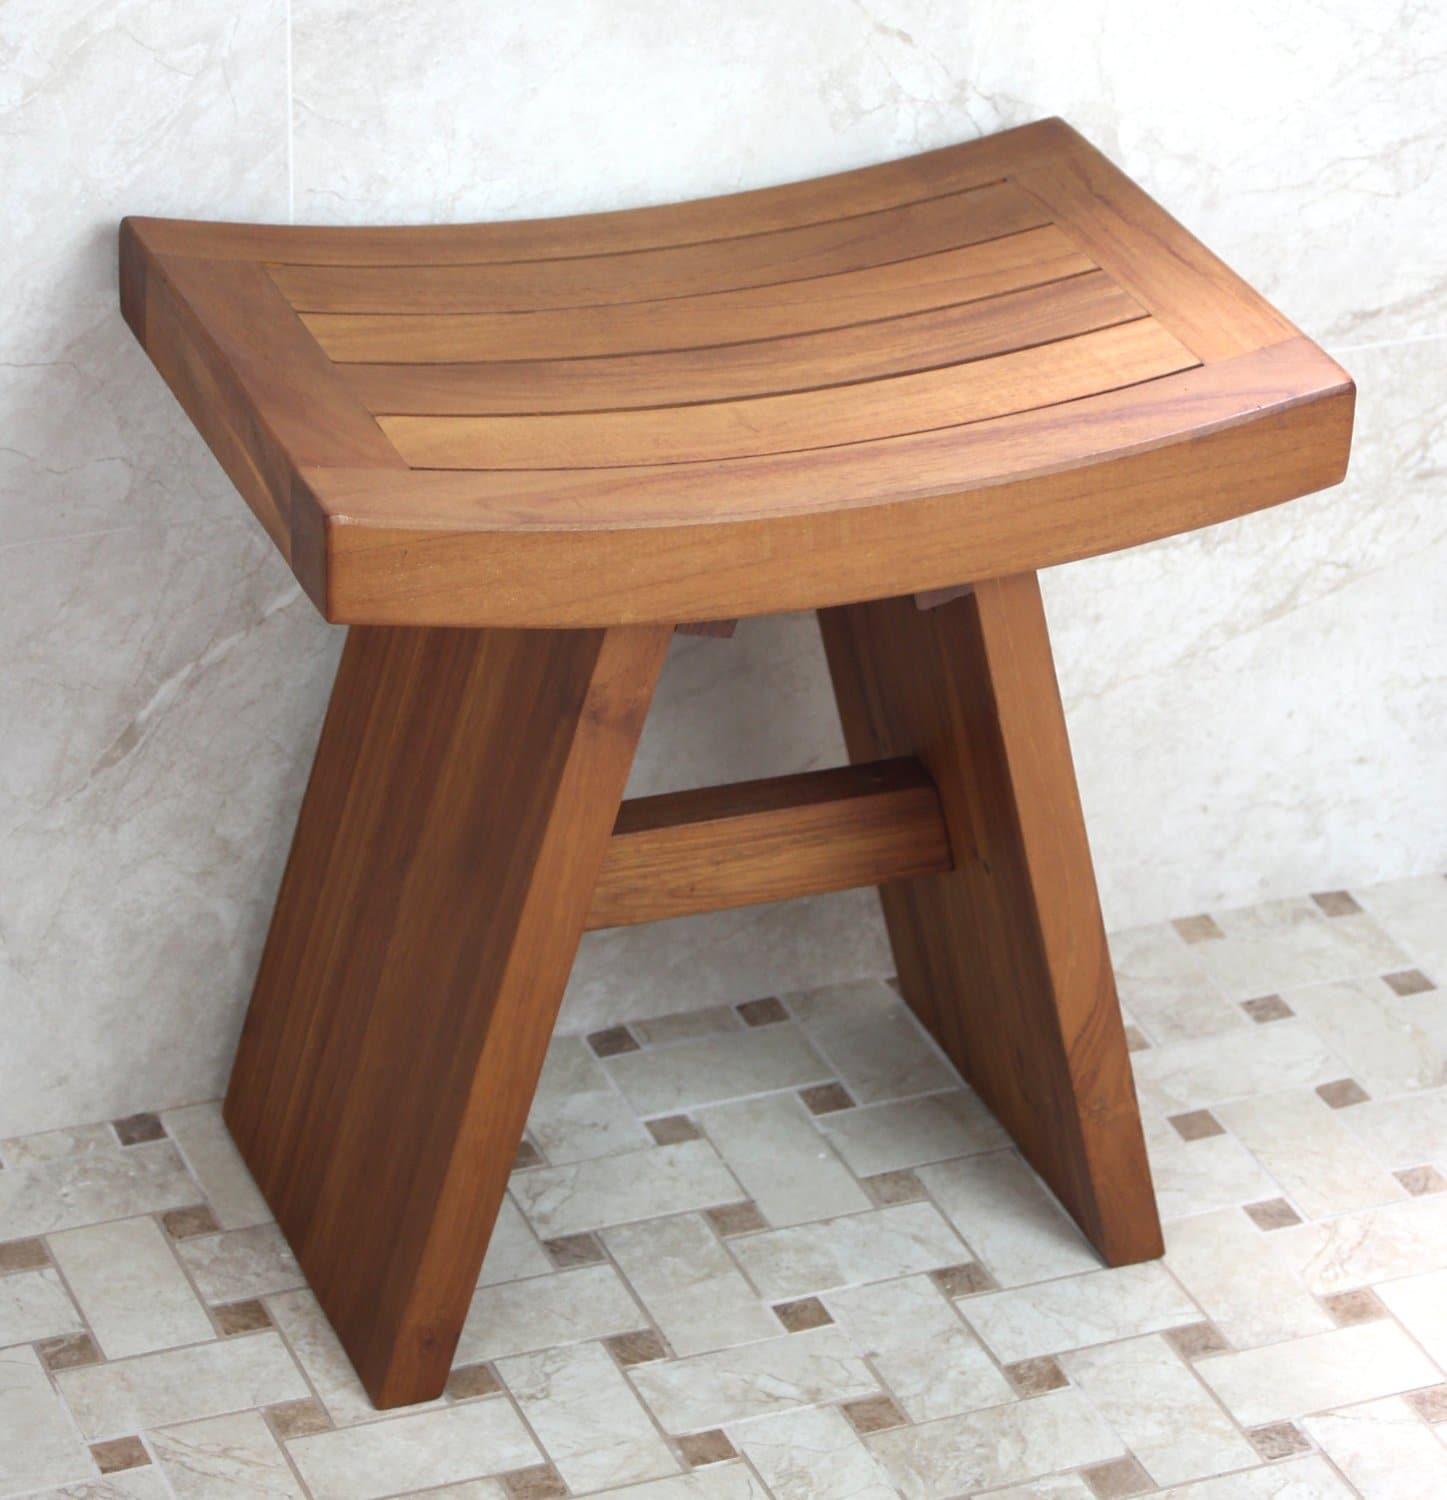 Why You Should Buy a Teak Shower Seat - Teak Patio Furniture World